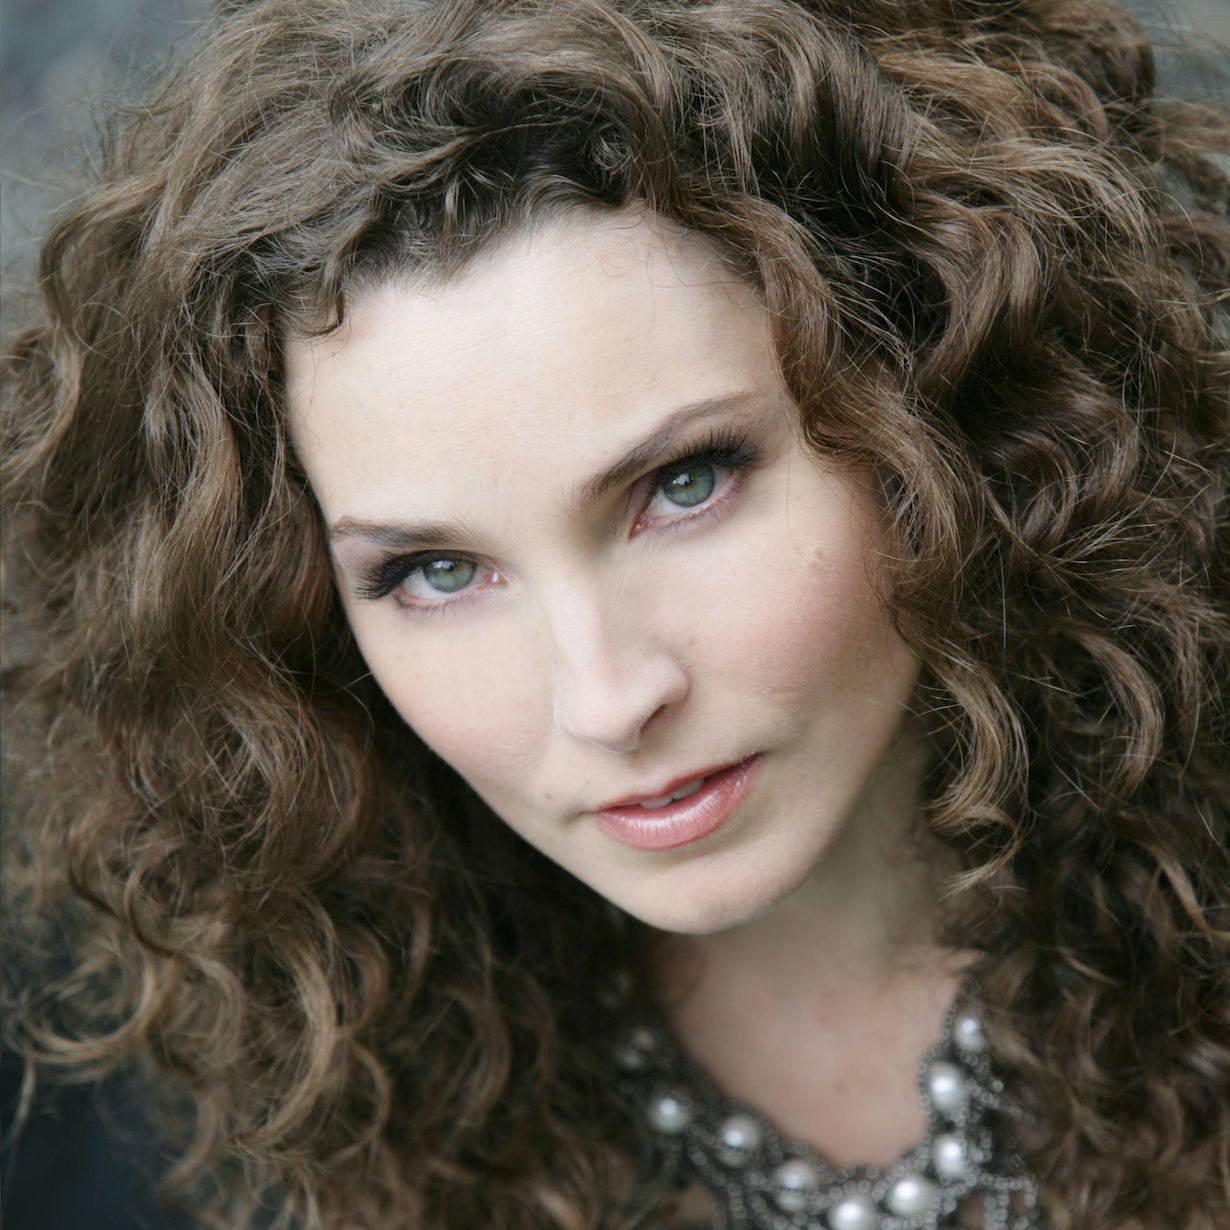 Alicia Minshew kendall amc gallery jp